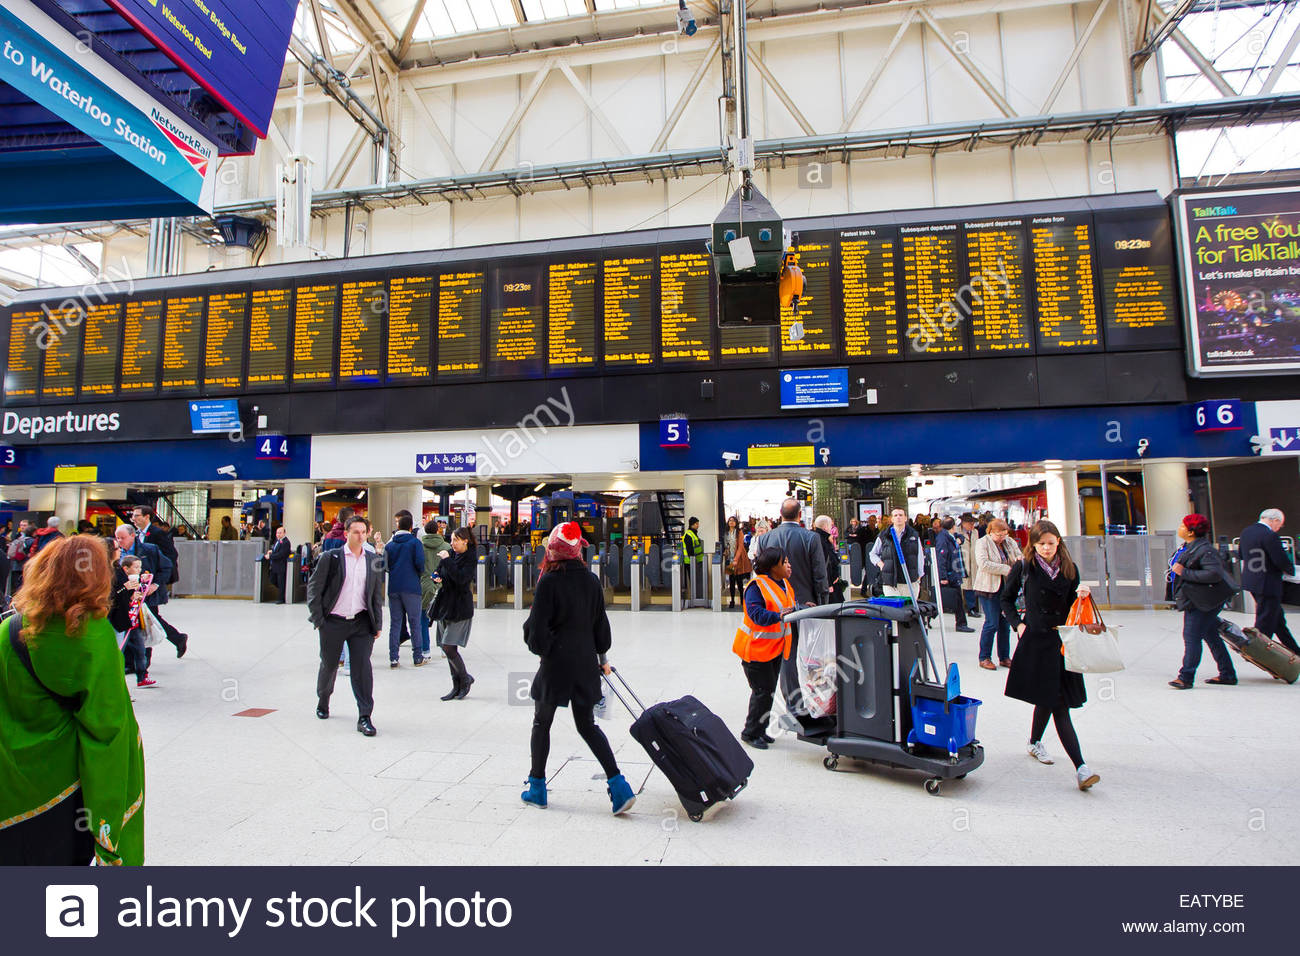 People scramble to catch their train at Waterloo Station in London. Stock Photo